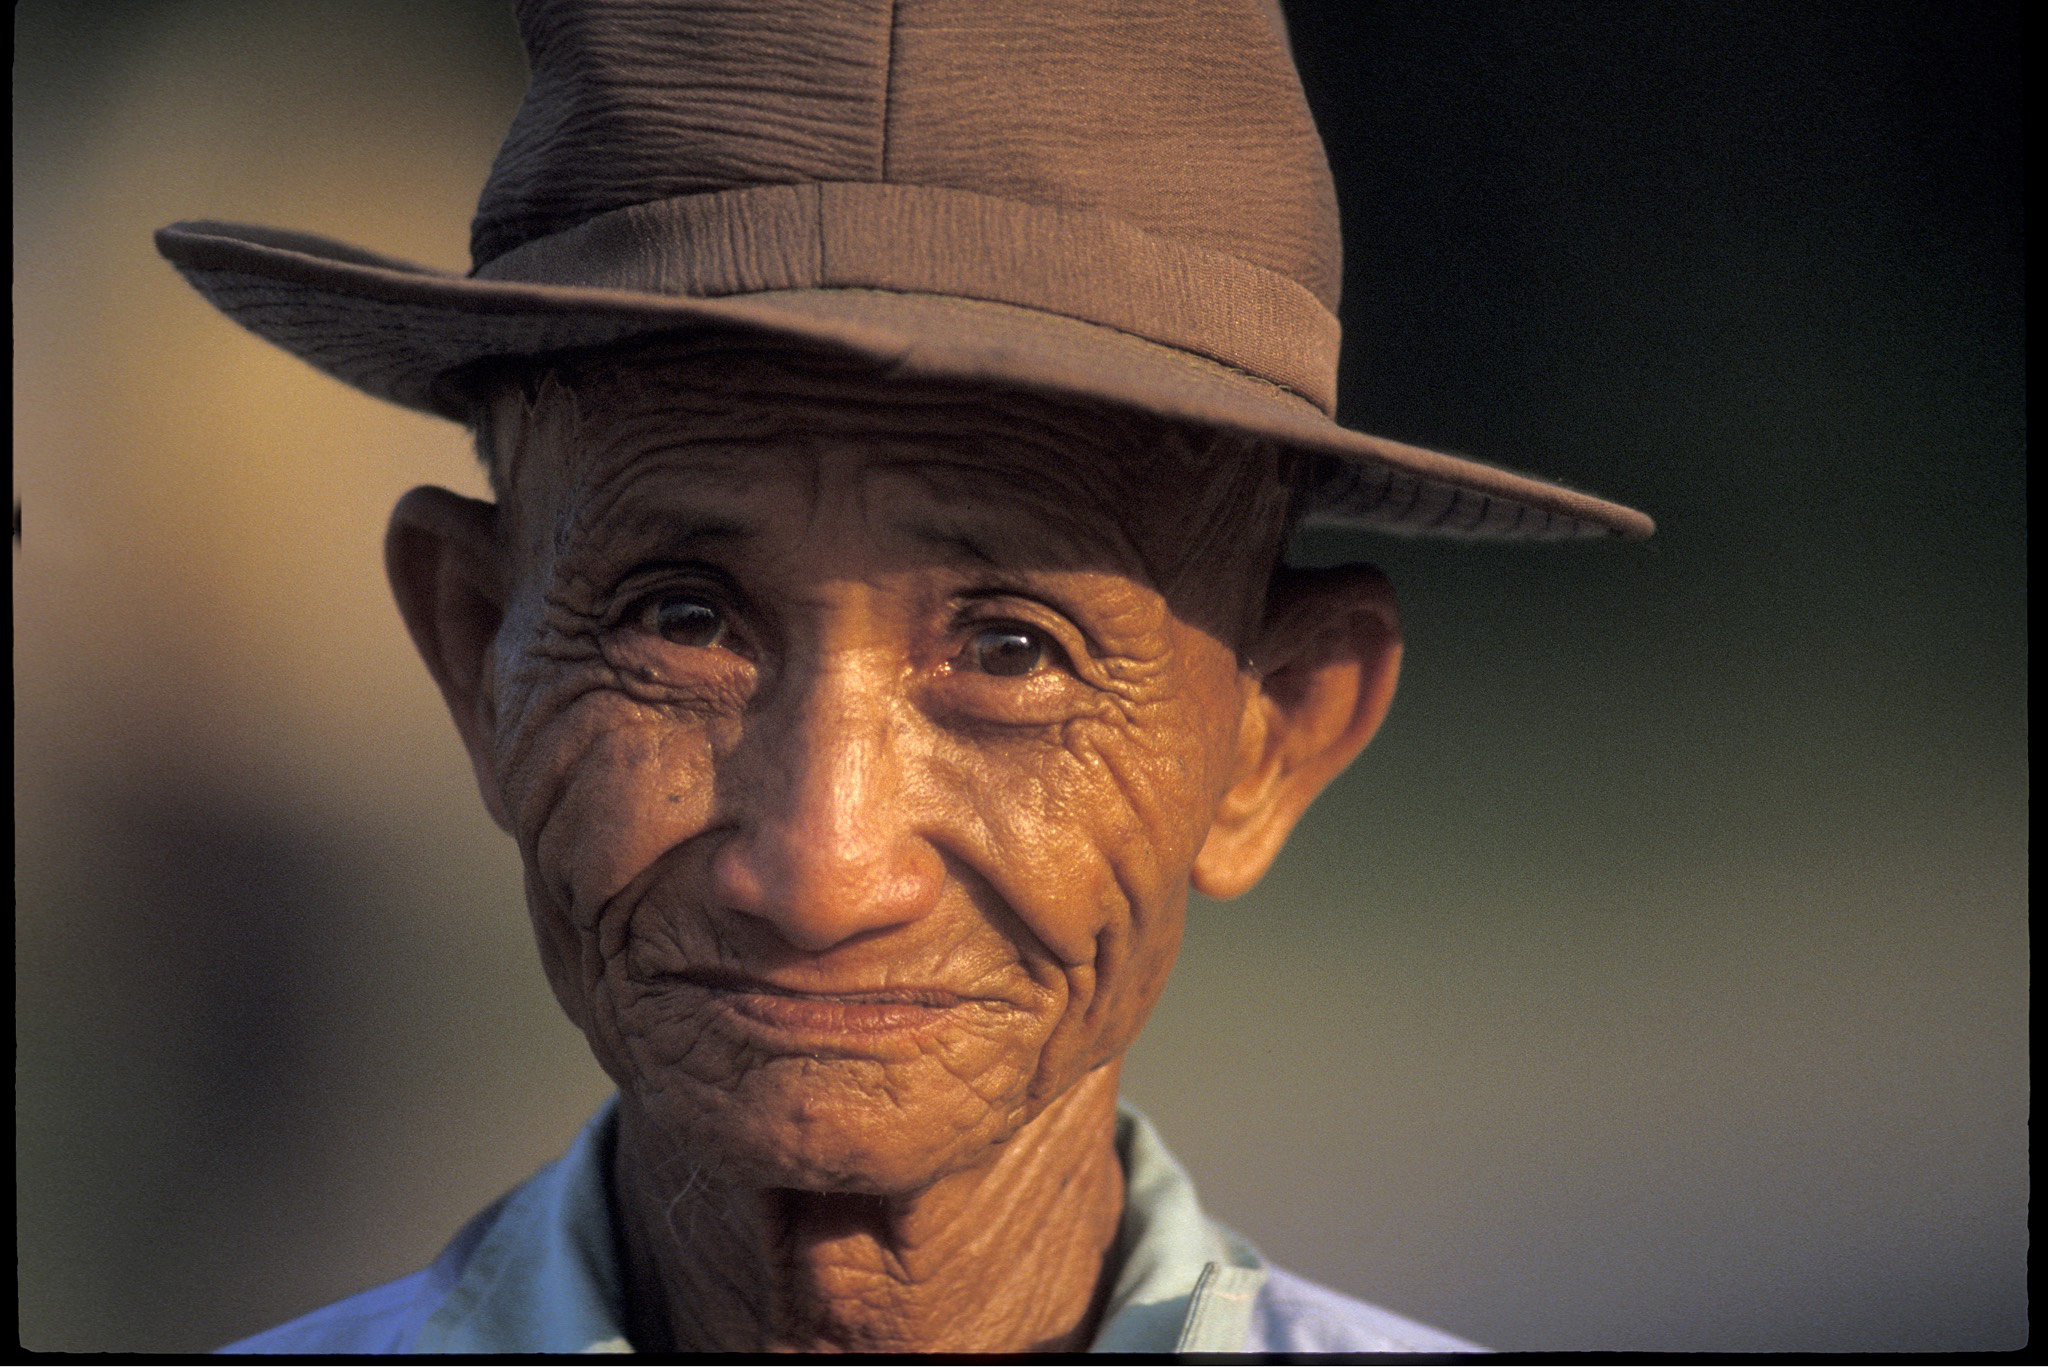 KTG Vietnam older man